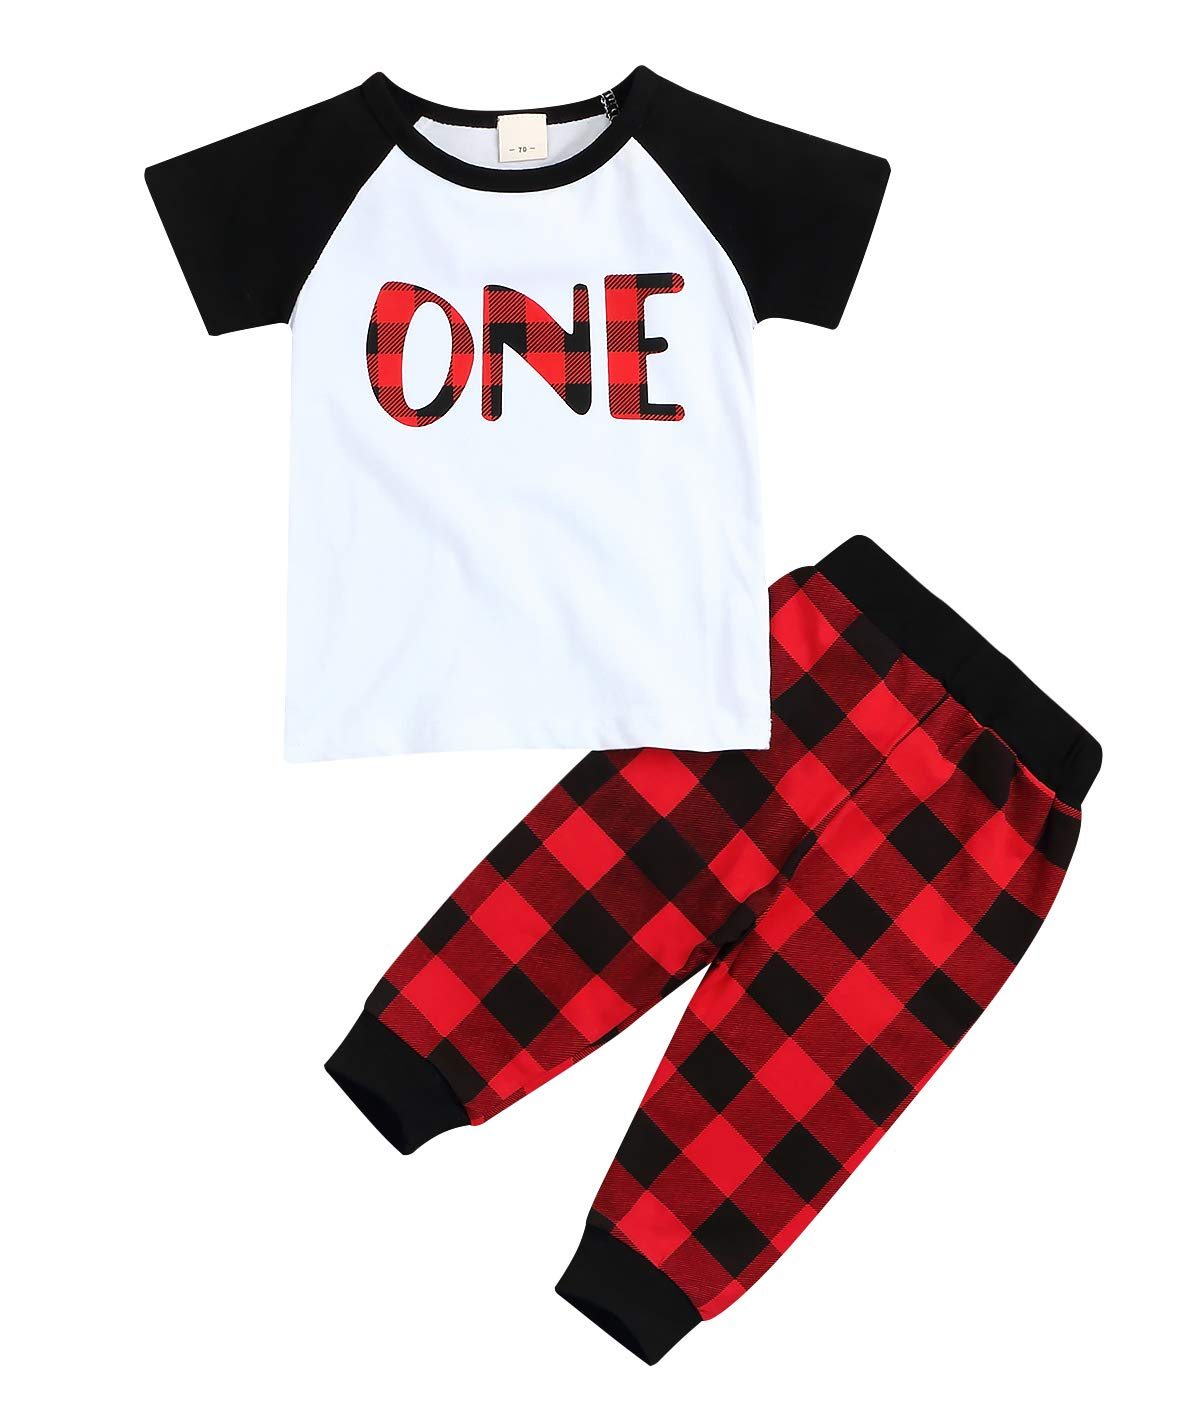 Younger star Babys 1st Birthday Outfits Long Sleeve T-Shirt with Red Plaid Pant and Hat (White B, 12-18 Months)